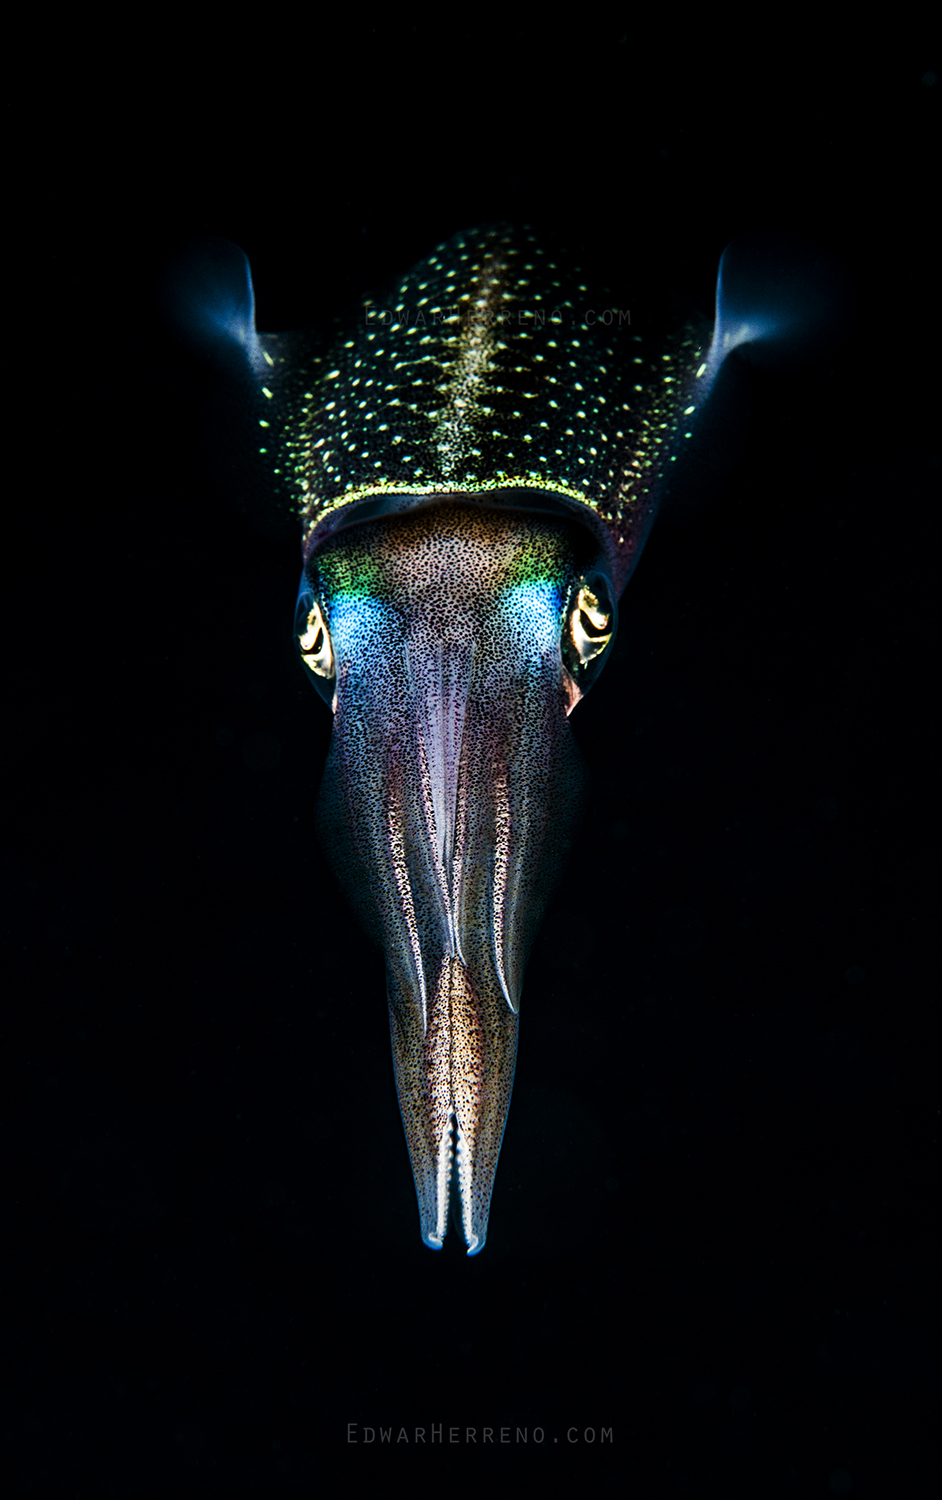 Caribbean Reef Squid - Utila